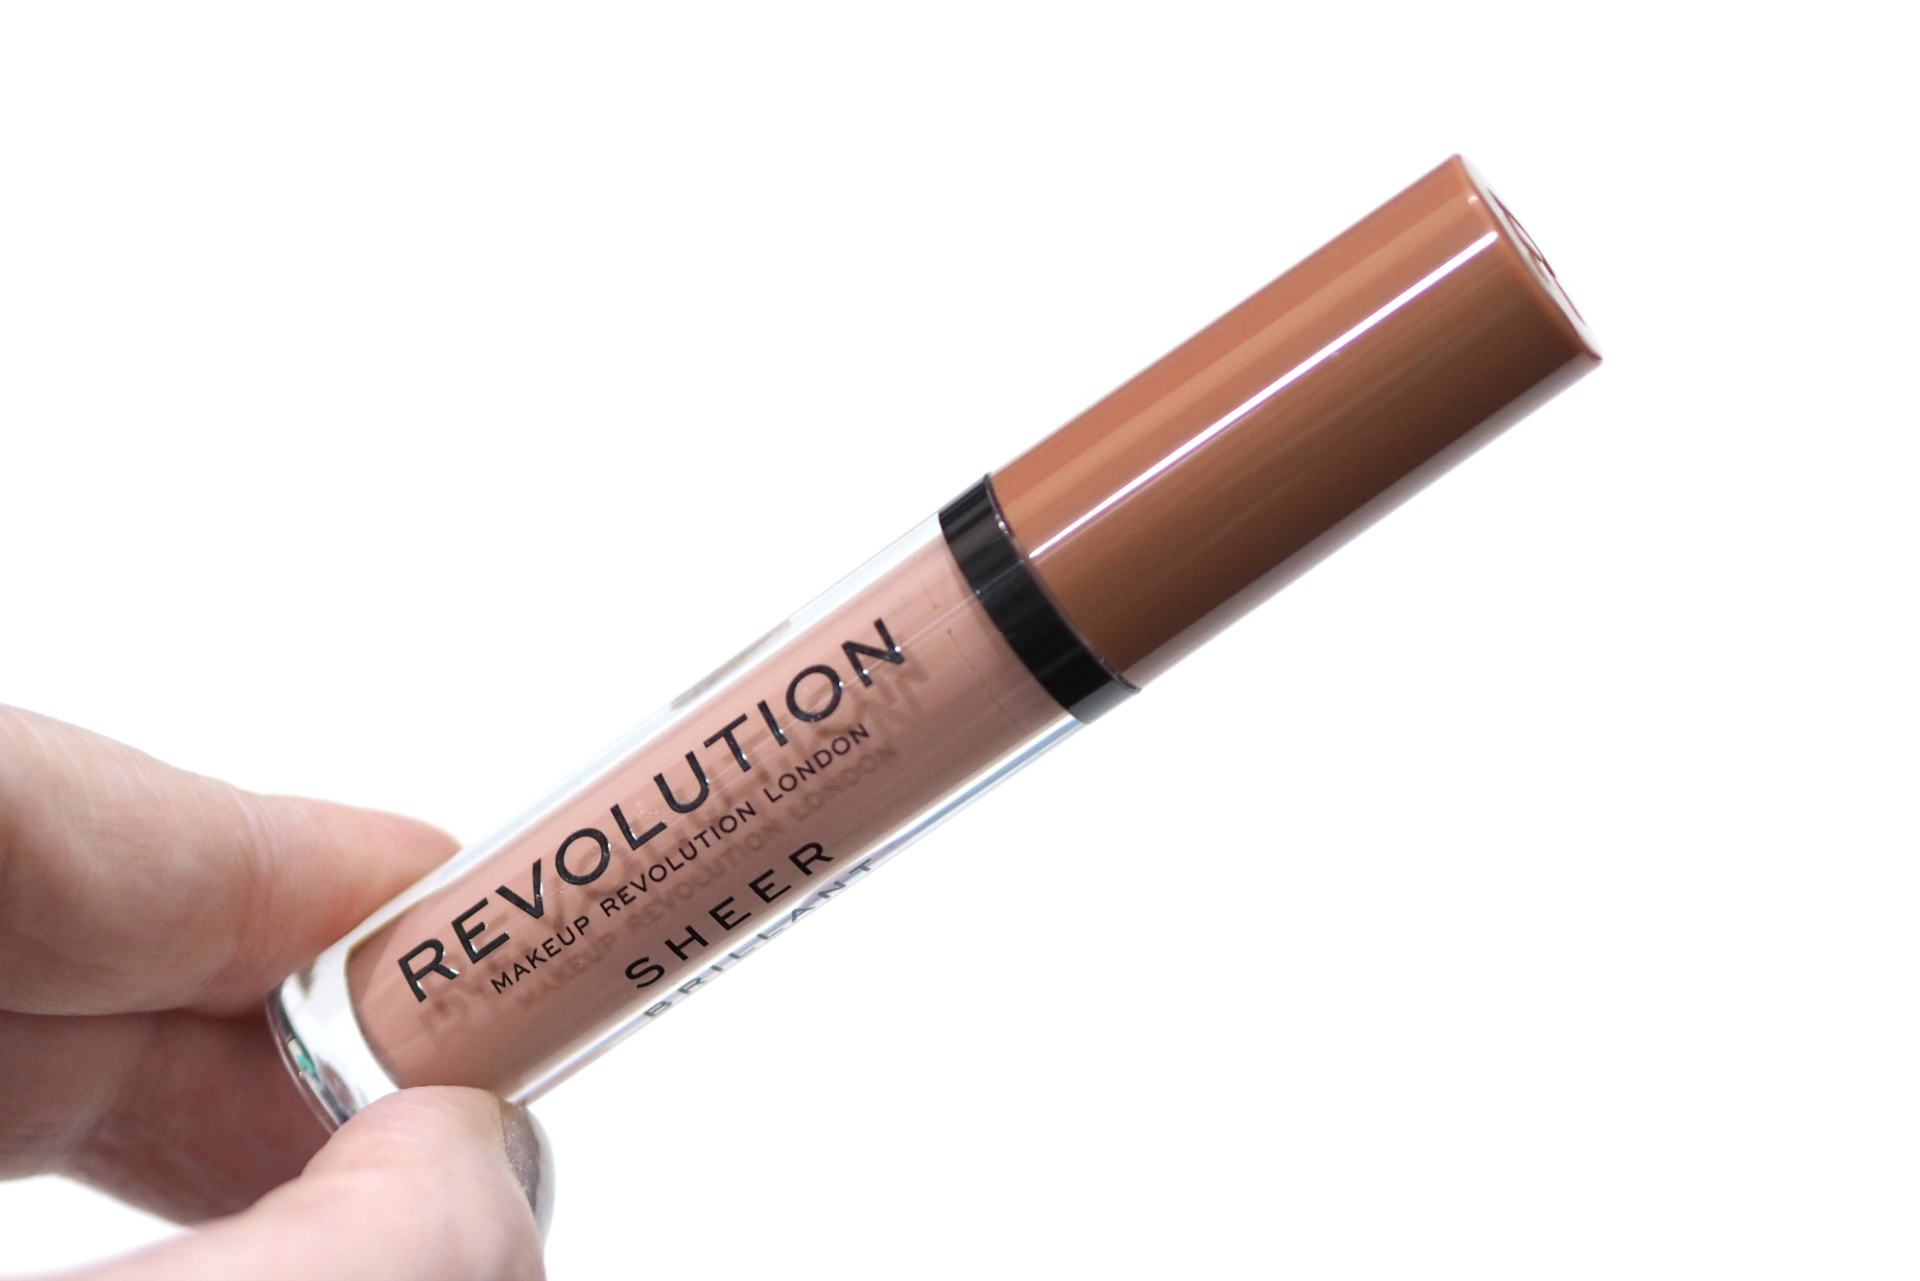 Revolution Piece of Cake Sheer Lip Gloss Review and Swatches